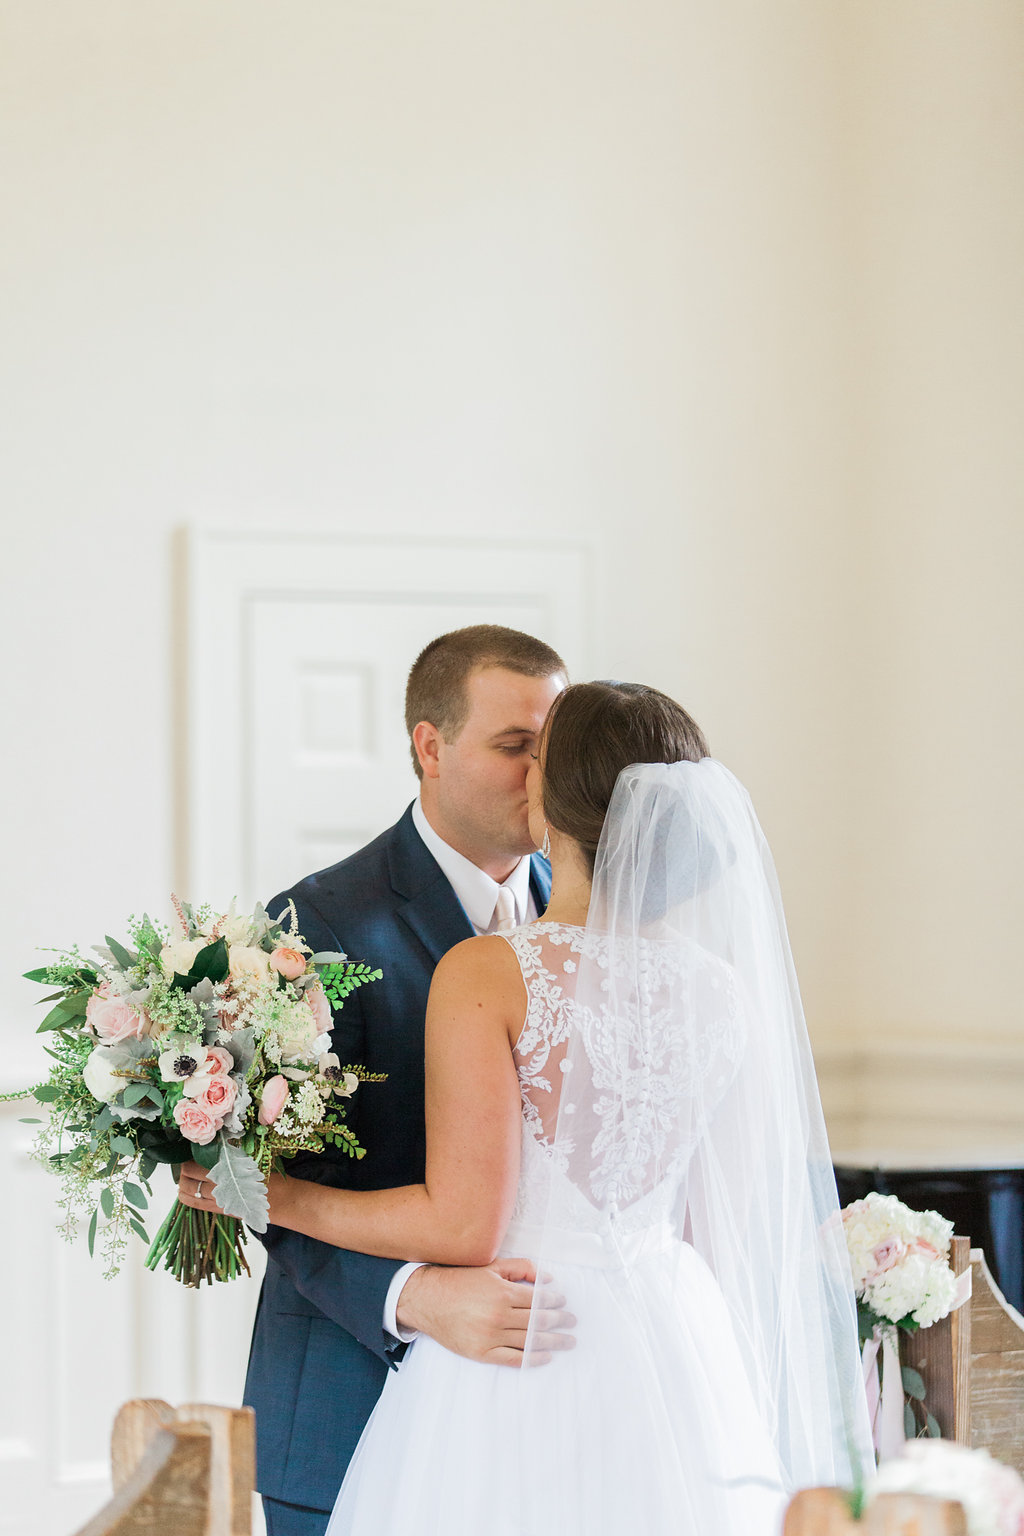 the-happy-bloom-photography-ivory-and-beau-wedding-planning-ivory-and-beau-bridal-boutique-whitfield-chapel-wedding-10-downing-wedding-savannah-wedding-historic-savannah-wedding-savannah-wedding-planner-savannah-weddings-a-to-zinnias-24.jpg